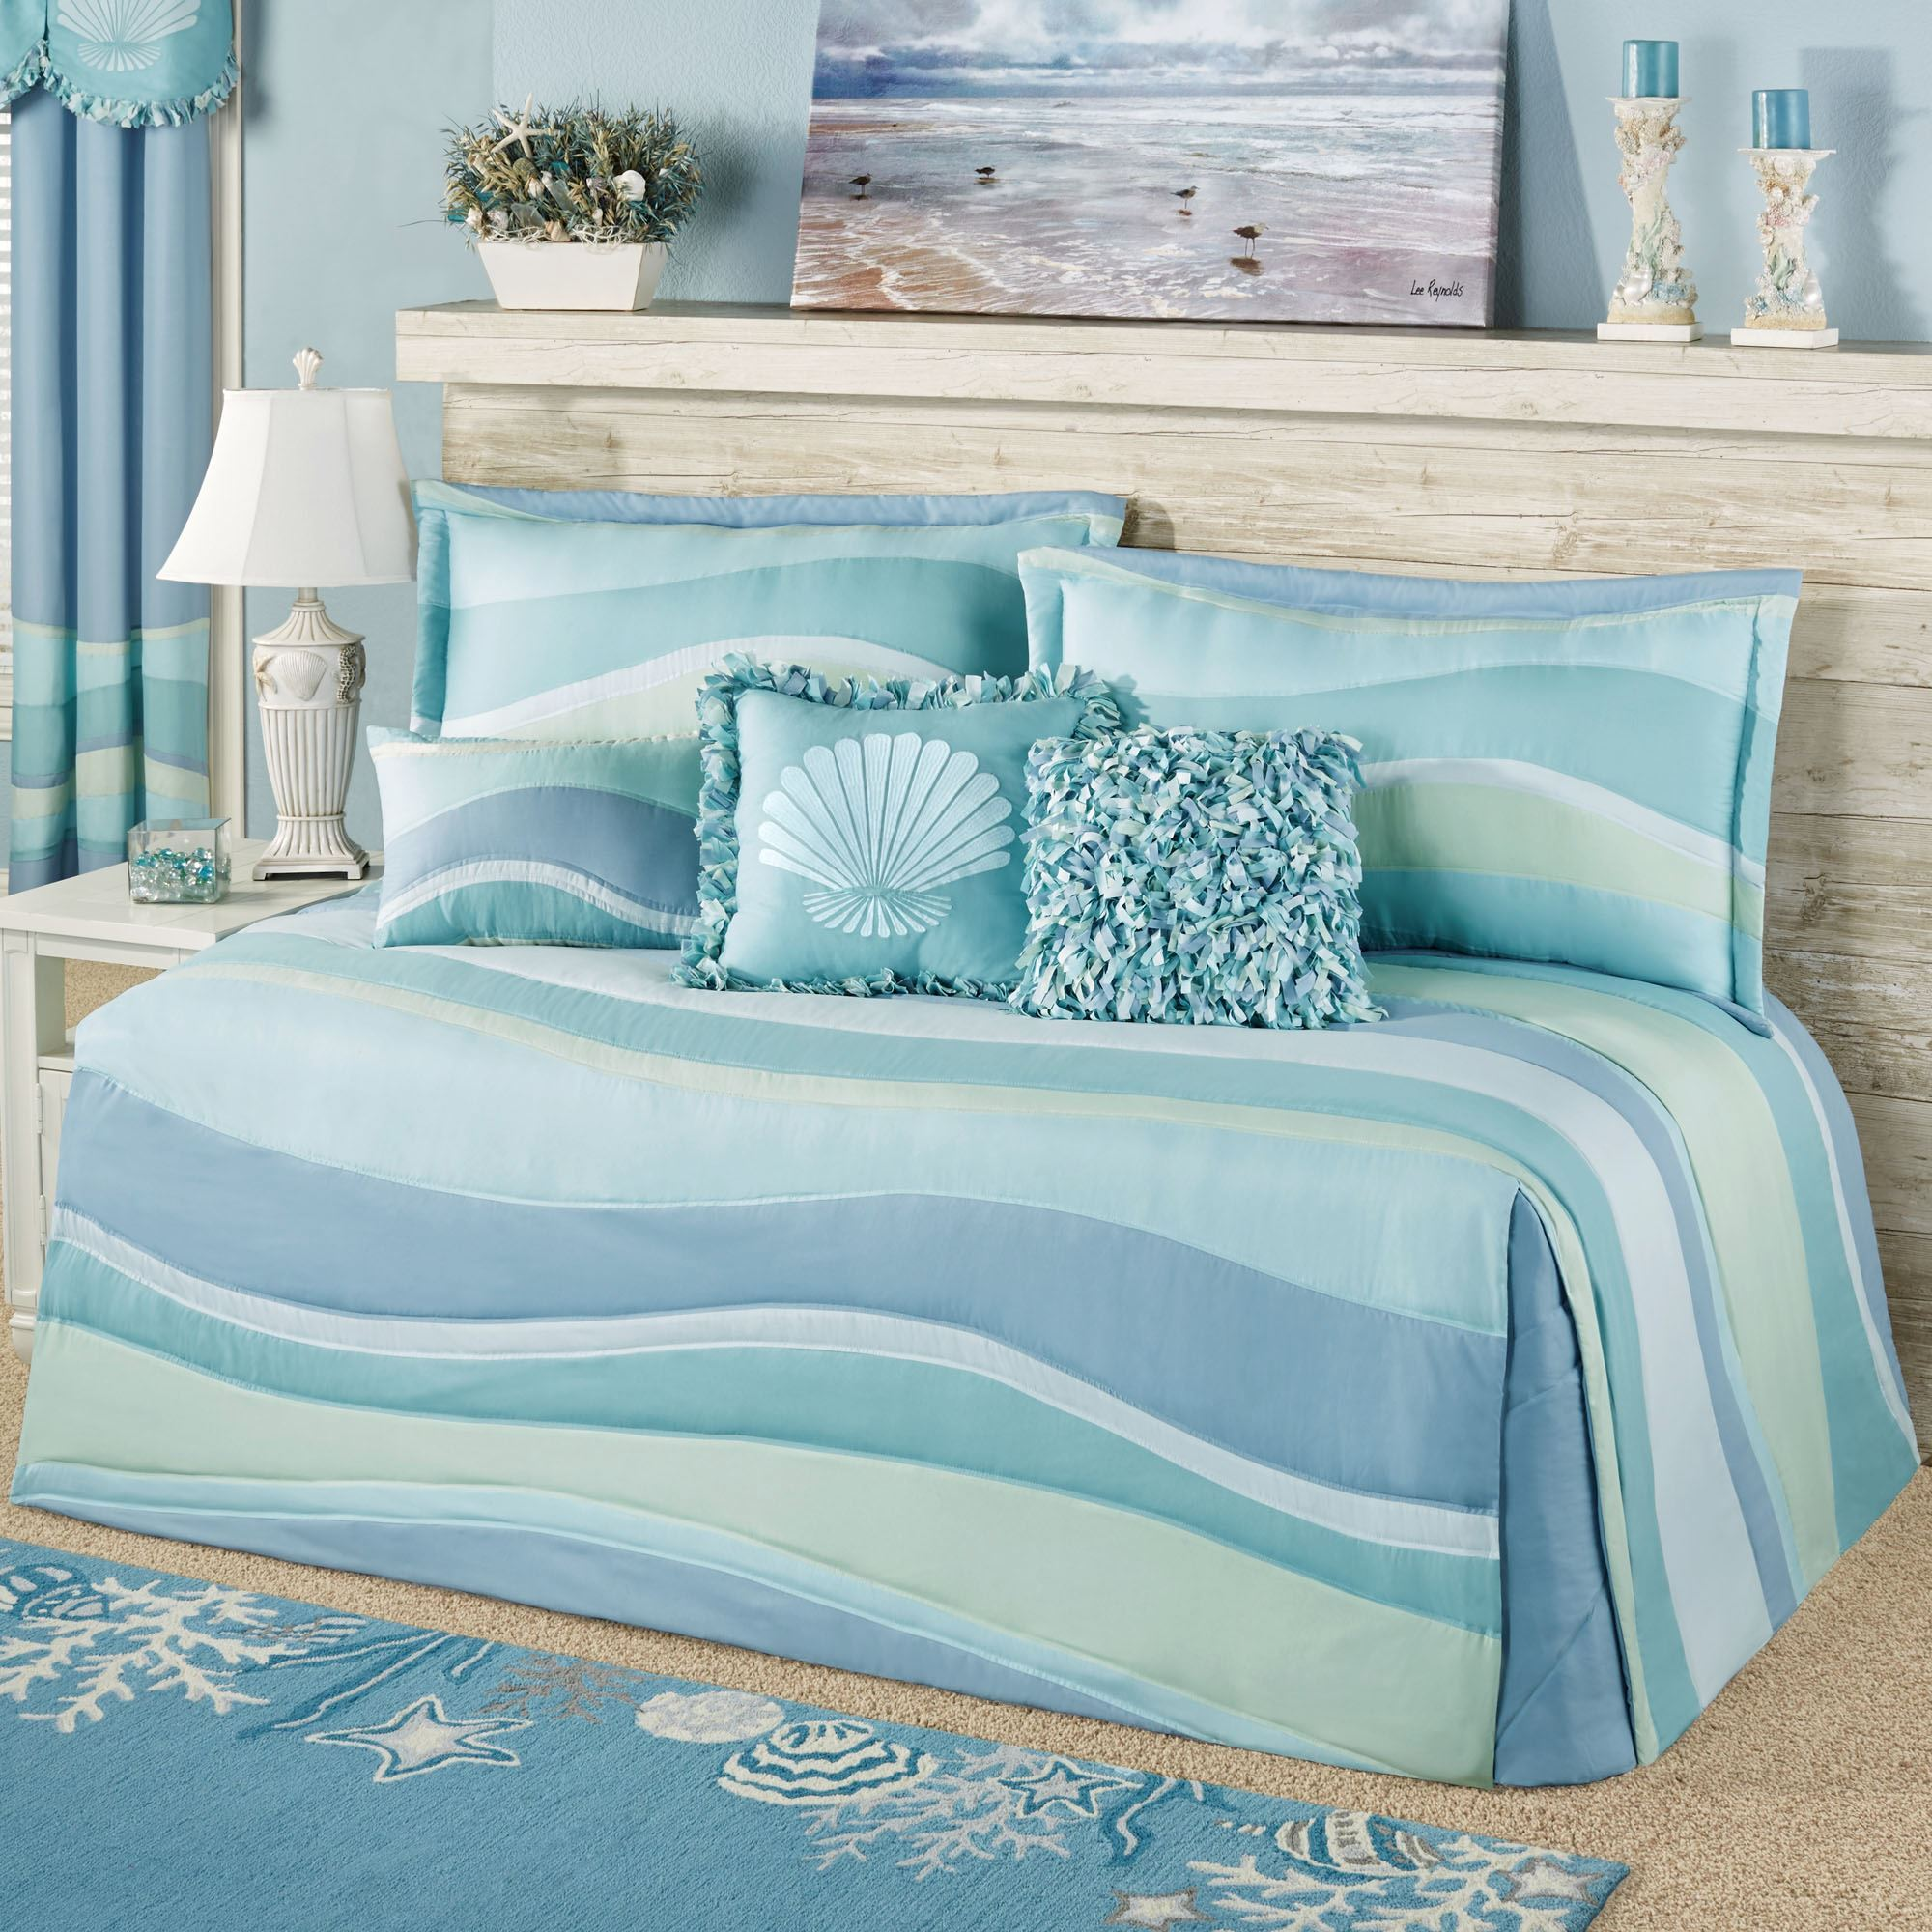 Ocean Tides Coastal Daybed Bedding Set